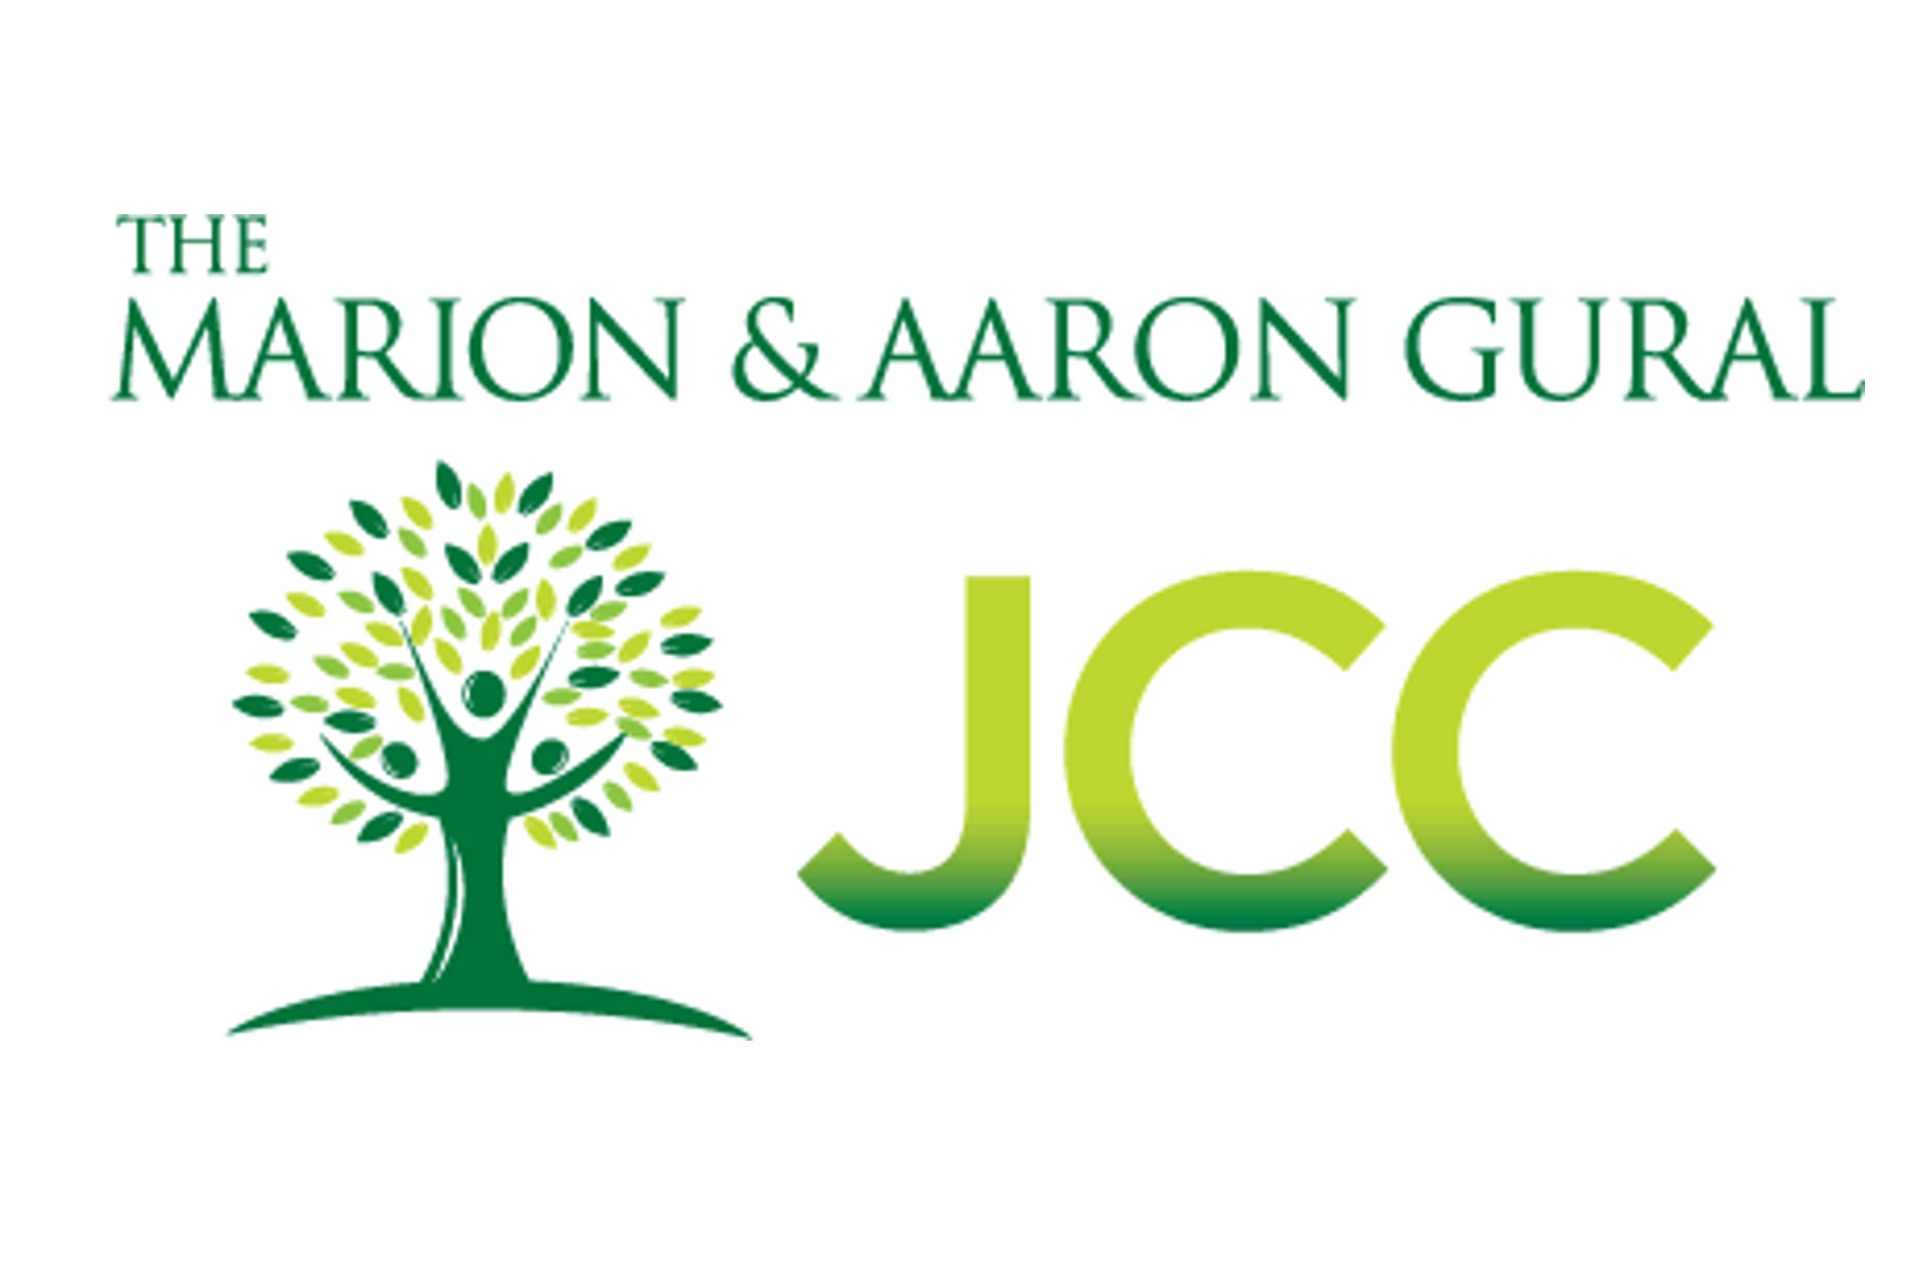 The Marion & Aaron Gural JCC